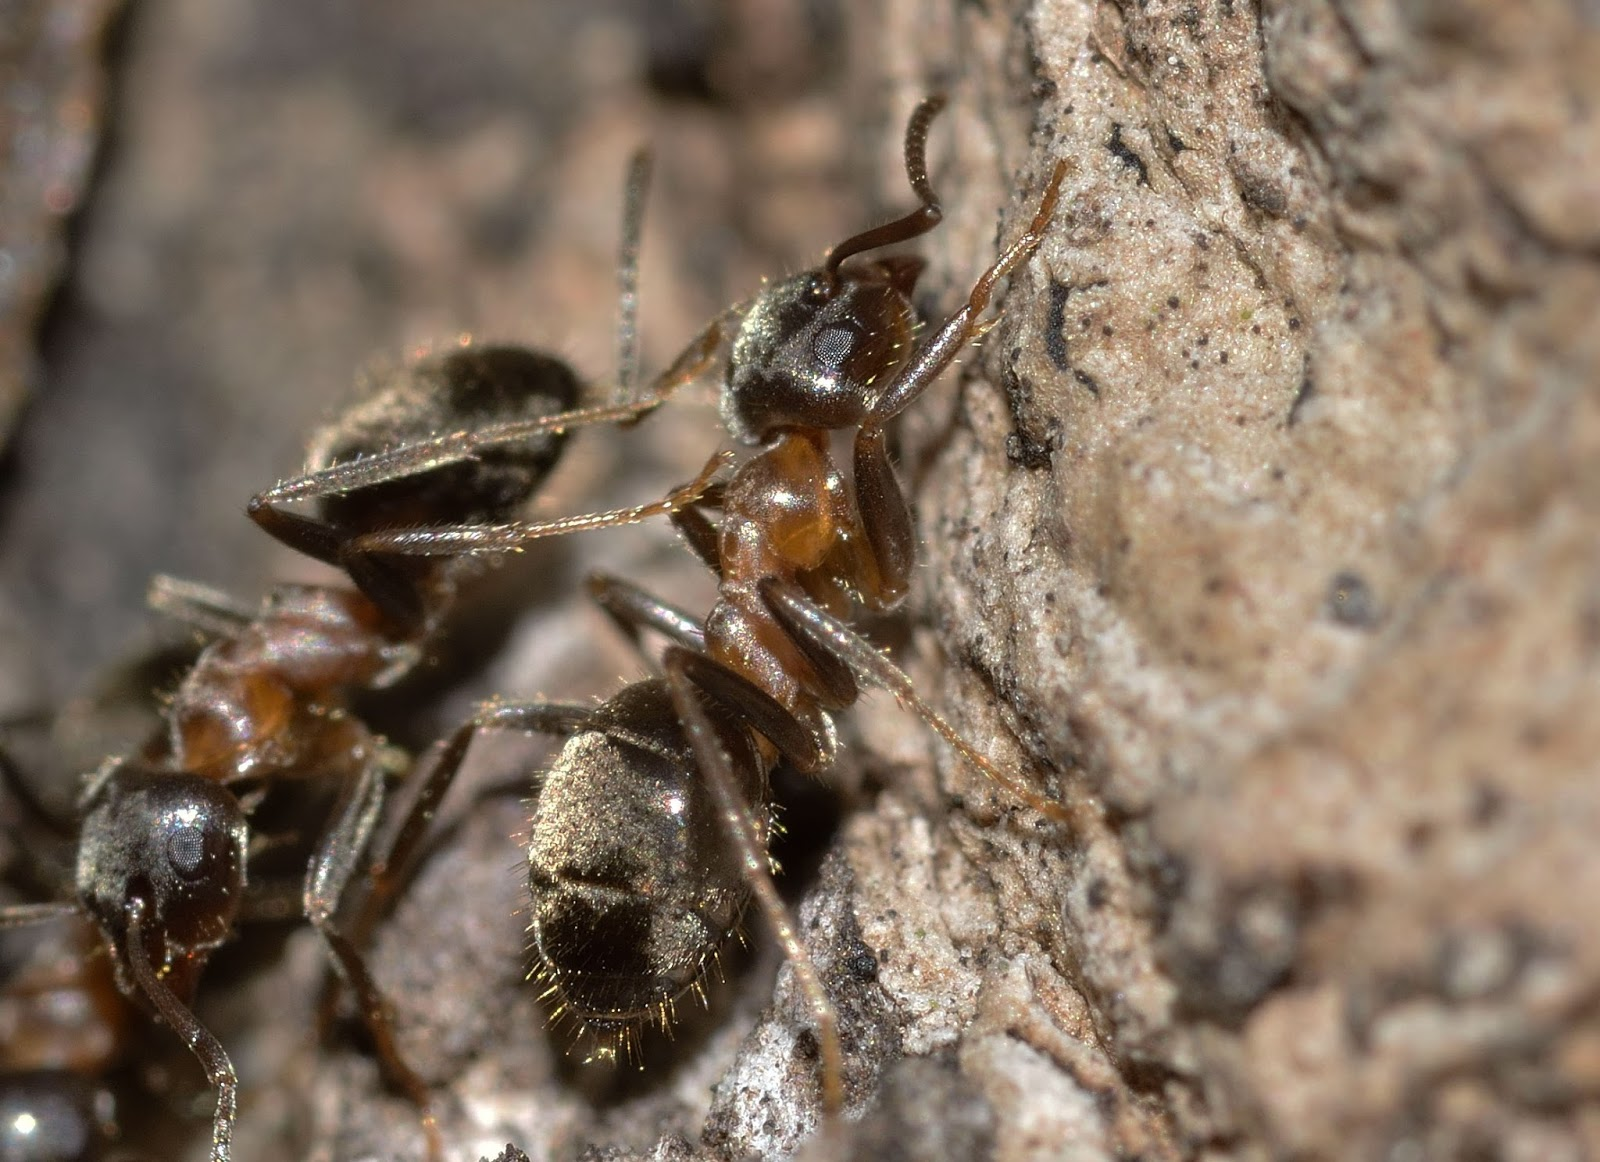 A picture of an ant cleaning another ant with her leg brushes.